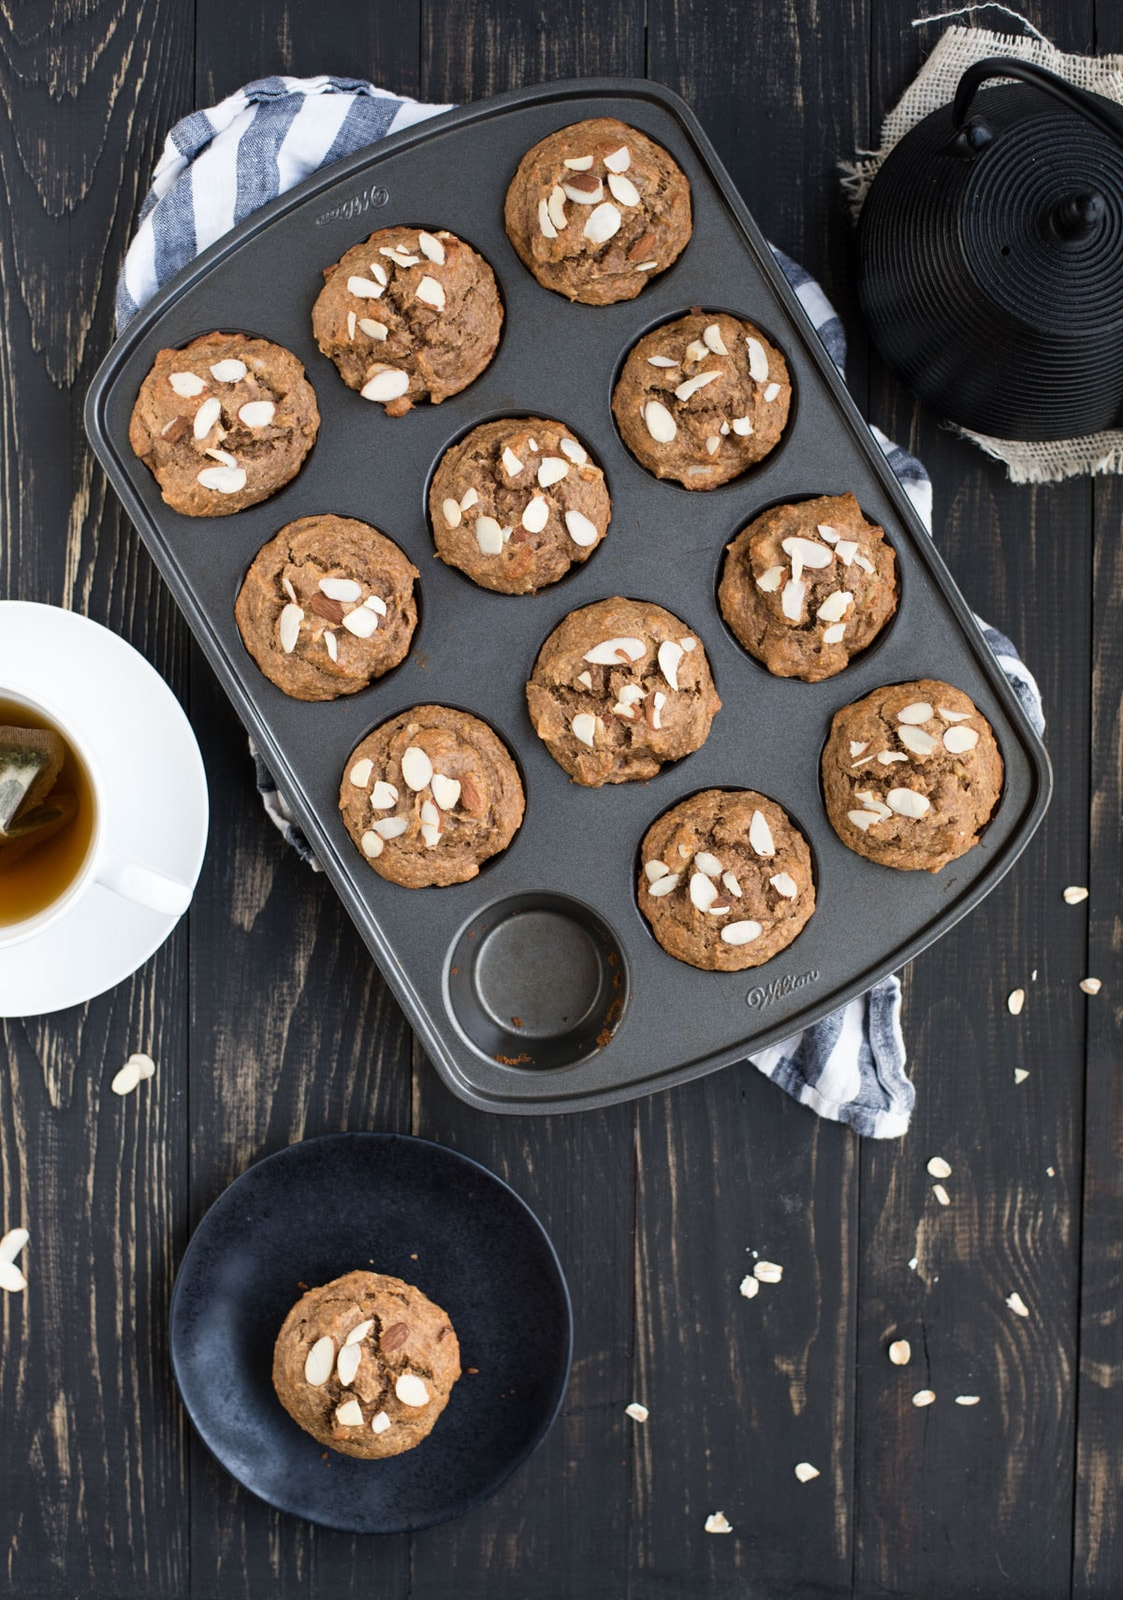 banana almond muffins with tea kettle from overhead